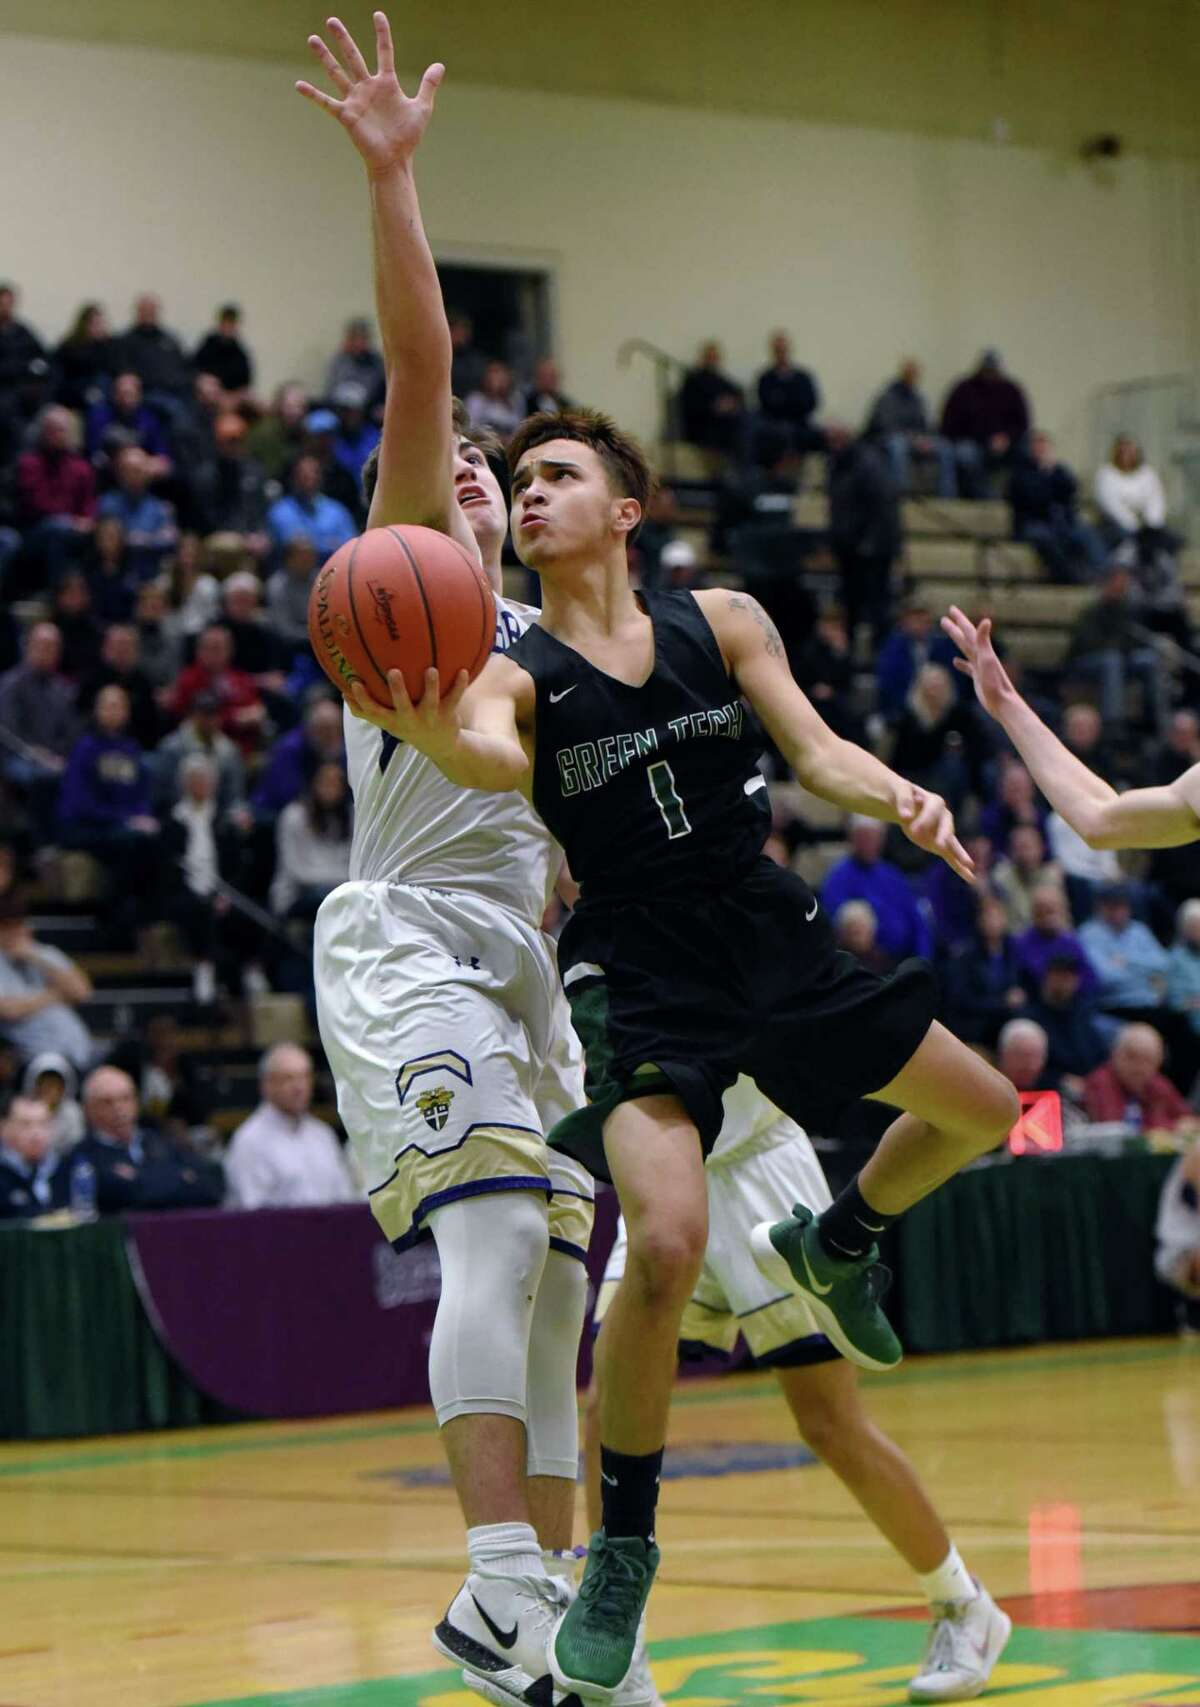 Green TechOs Joshua Rodriguez leaps toward the net during a game against CBA on Saturday, Feb. 23, 2019 at the McDonough Complex in Troy, NY. (Phoebe Sheehan/Times Union)